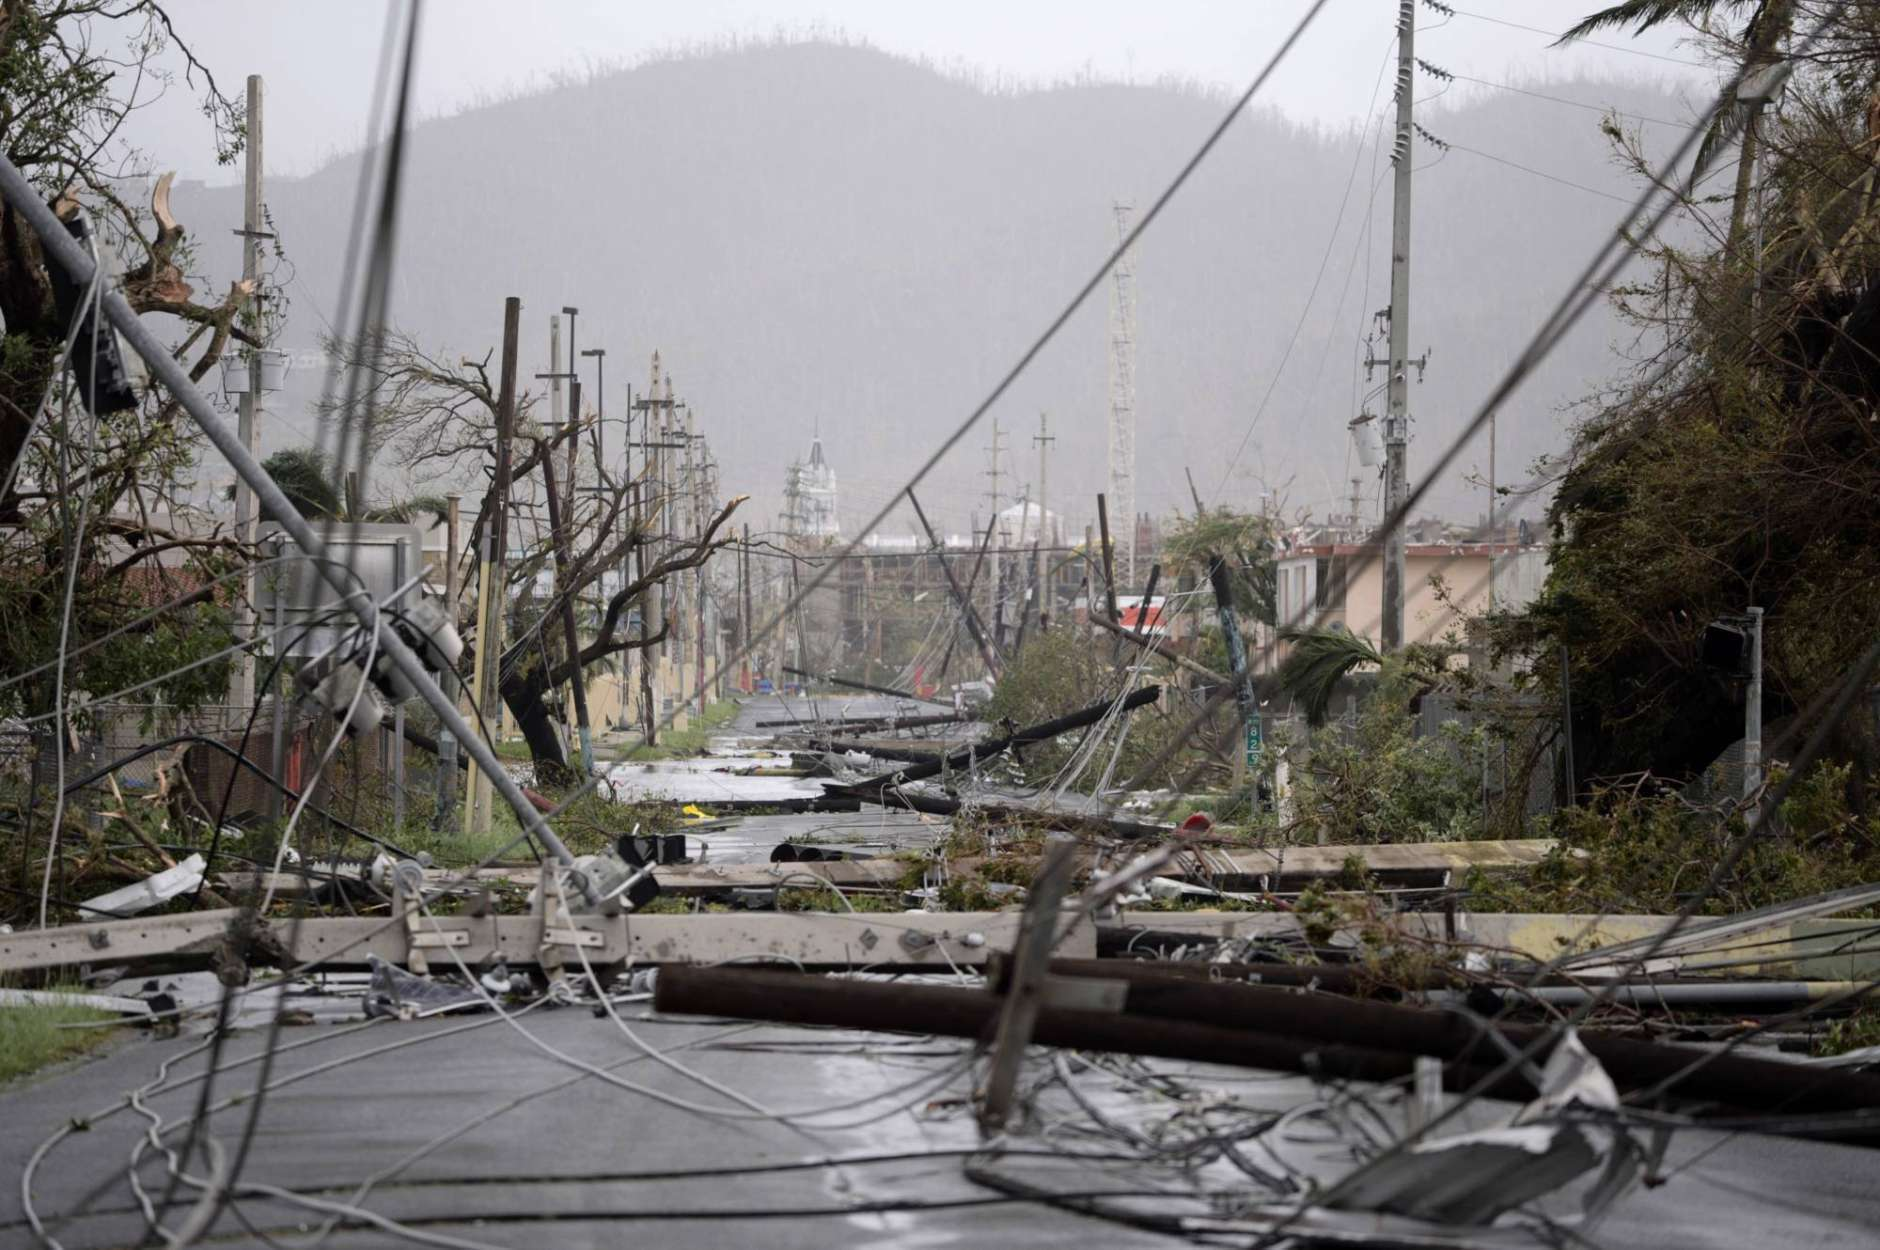 FILE - This Sept. 20, 2017 file photo shows smashed poles and snarled power lines brought down by Hurricane Maria, in Humacao, Puerto Rico. Officials warned Maria would decimate the power company's crumbling infrastructure and force the government to rebuild dozens of communities. (AP Photo/Carlos Giusti, File)